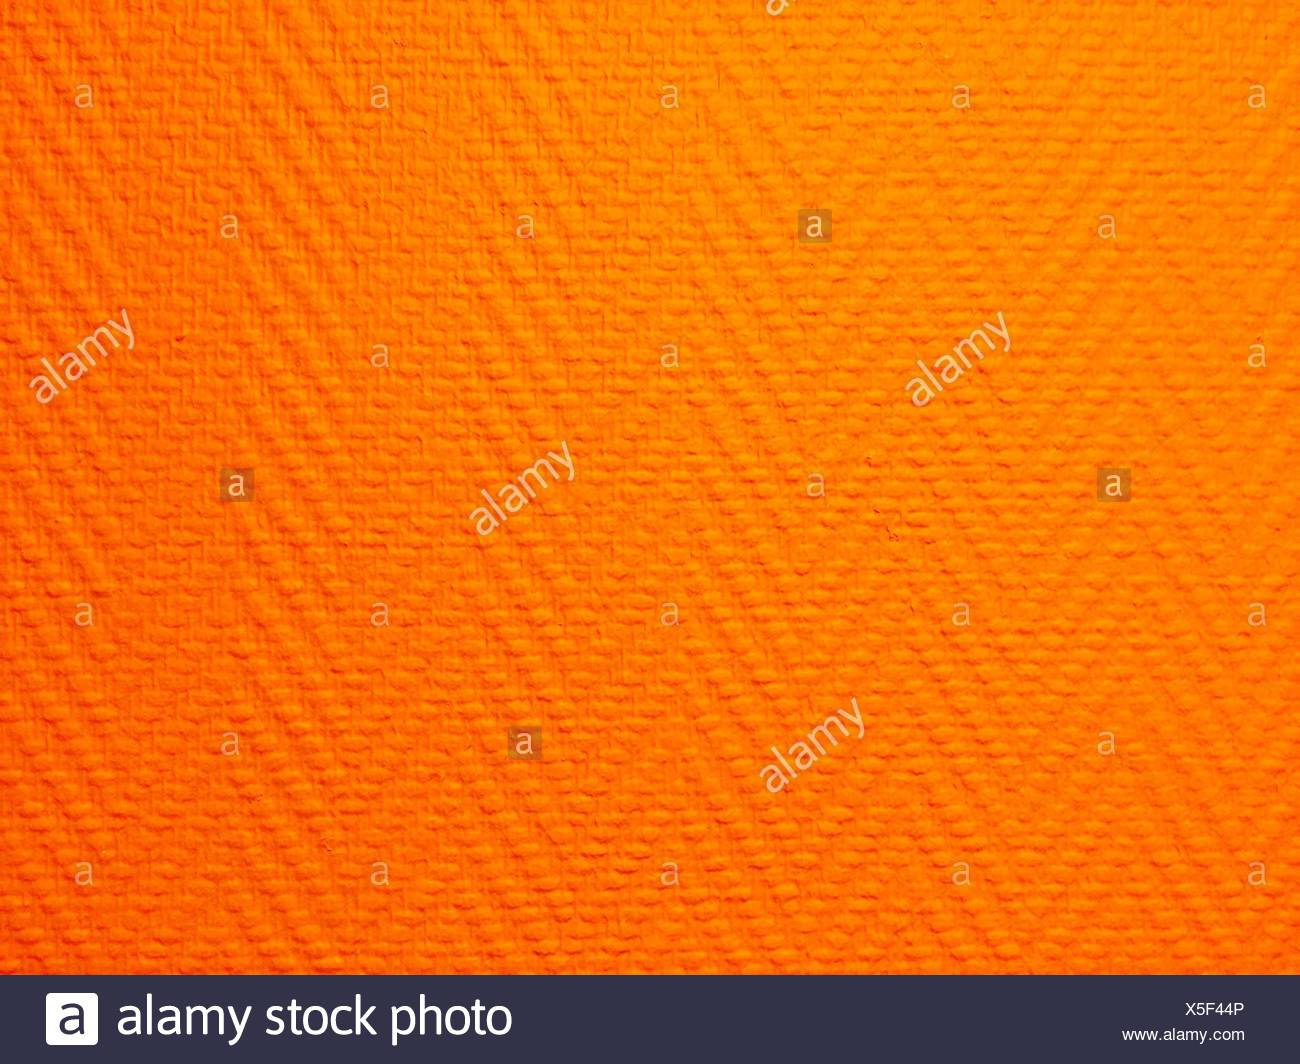 leather - Stock Image